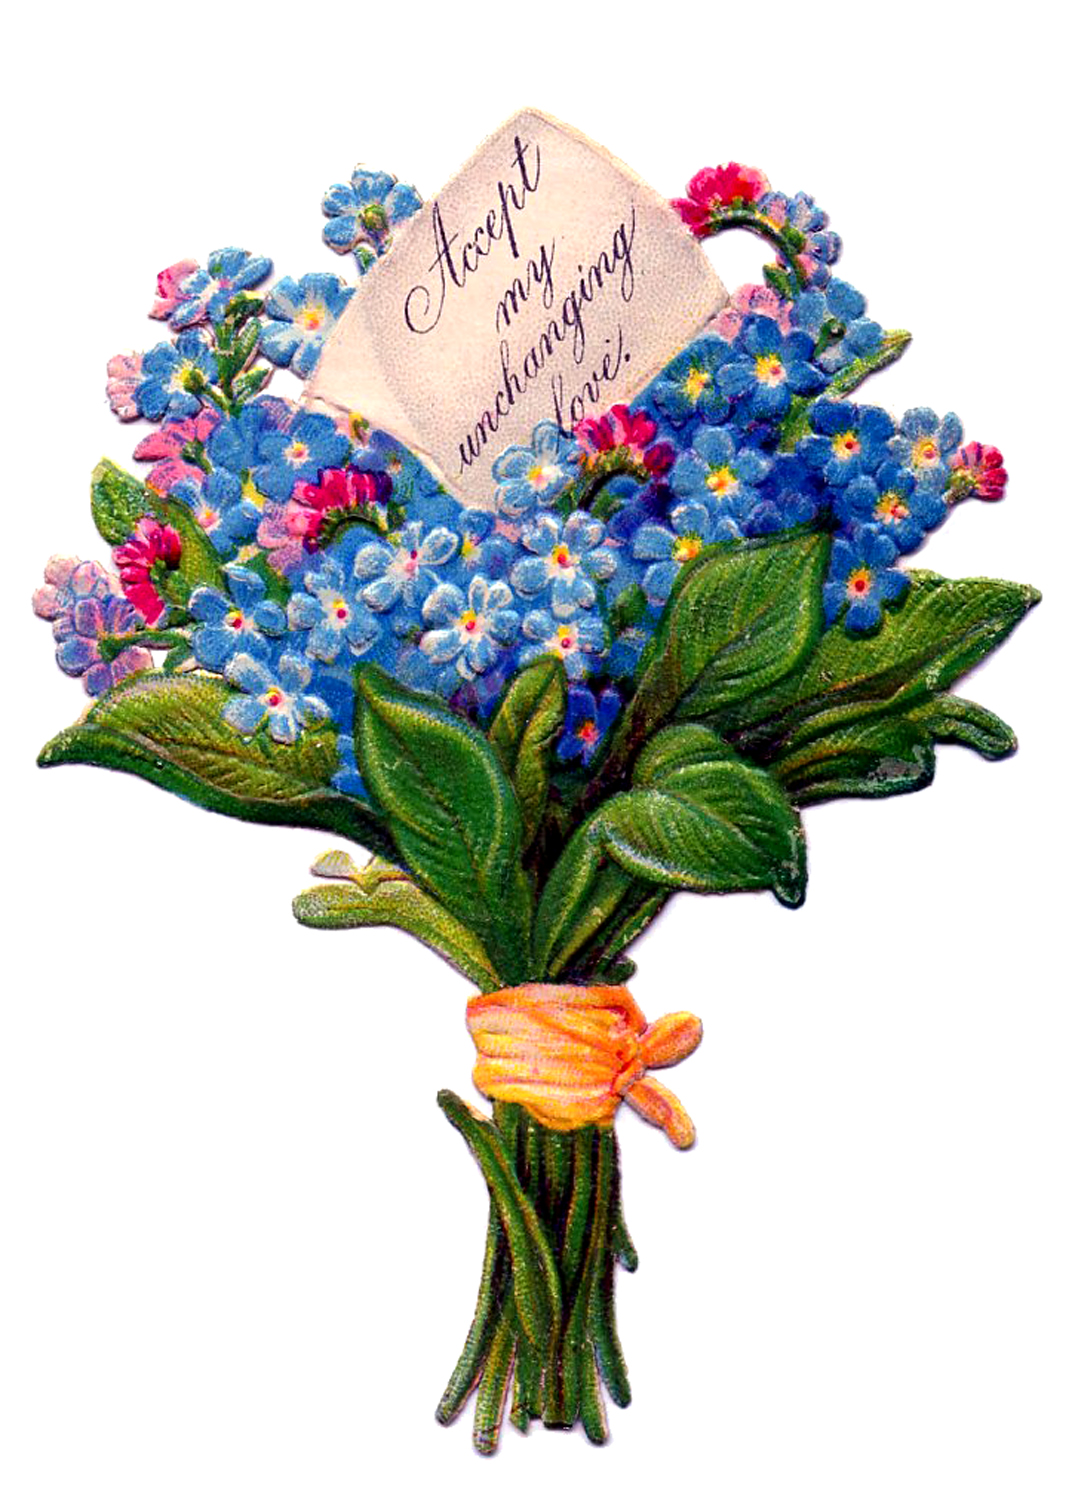 Wildflower clipart flower bouquet Floral Vintage Vintage The Free